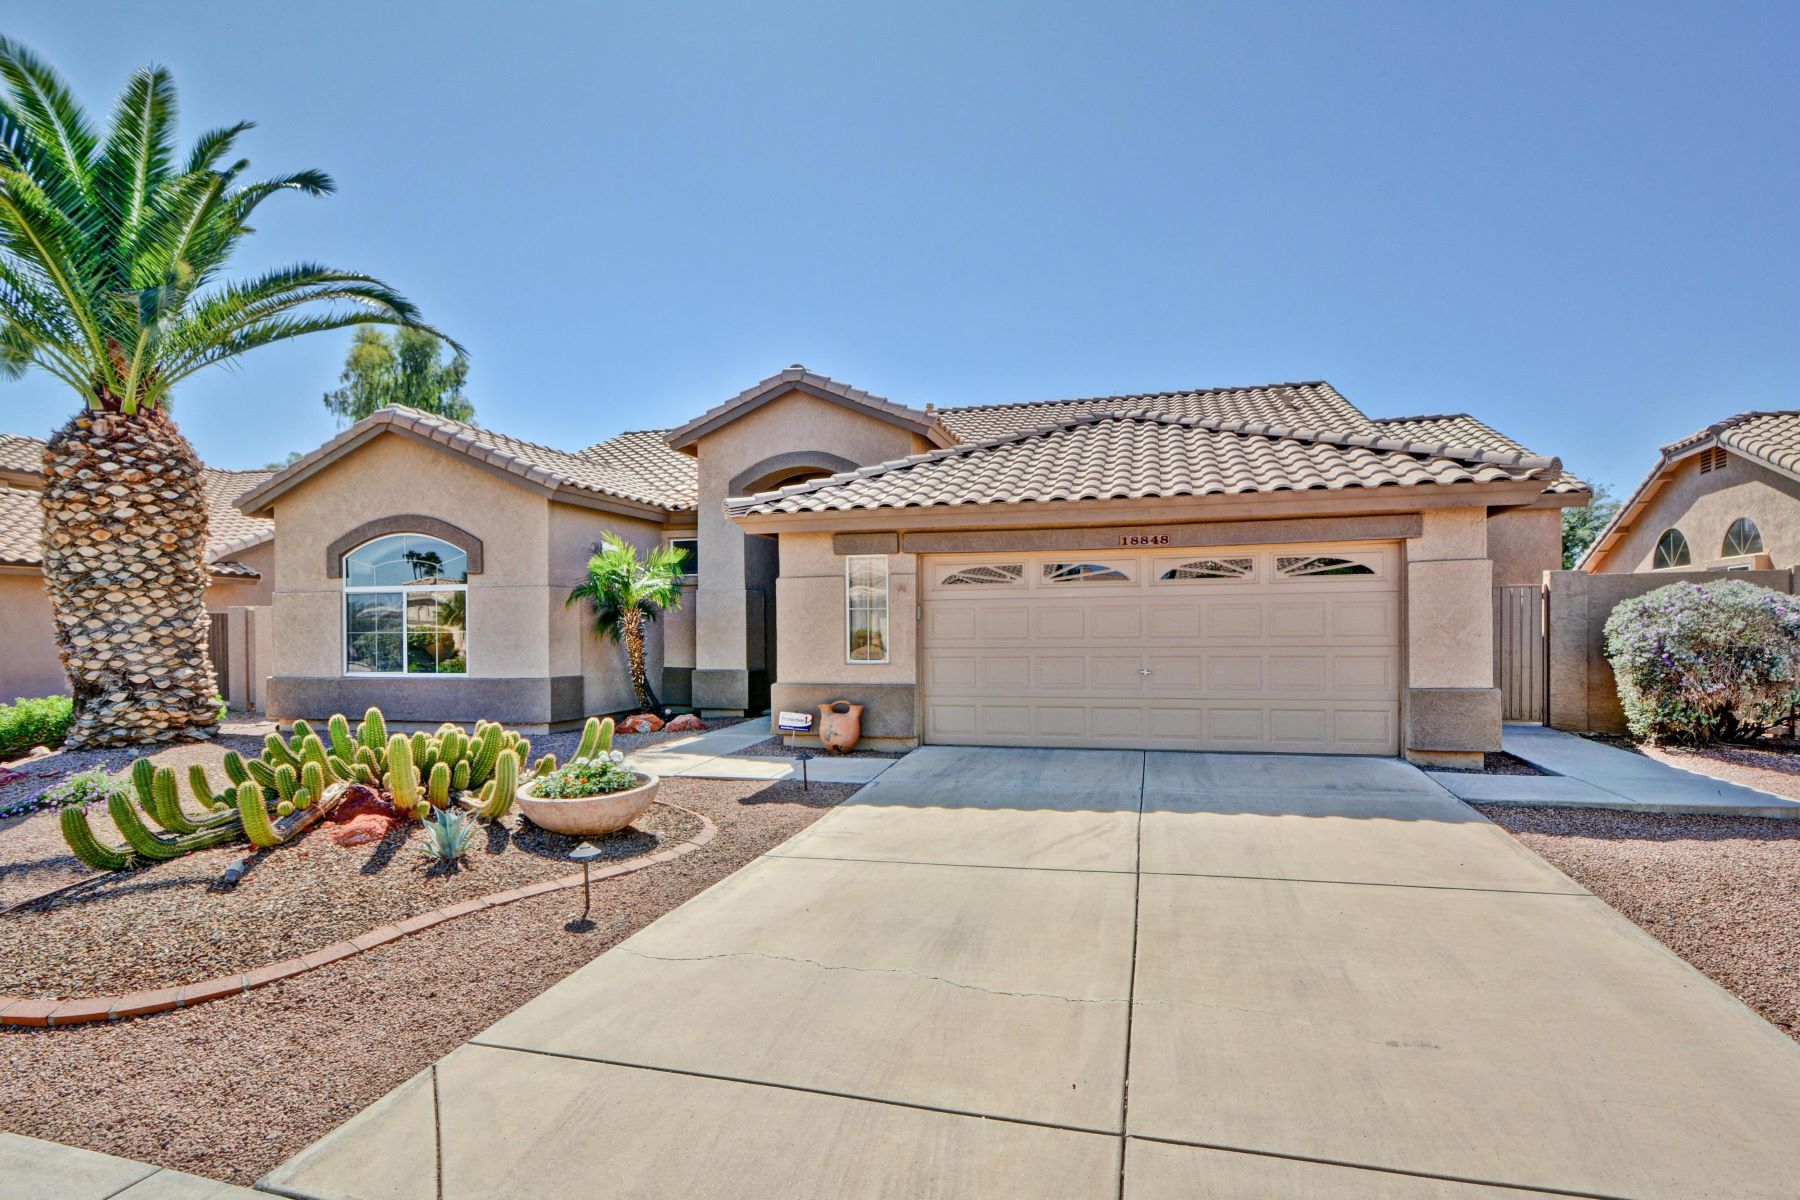 Single Family Homes por un Venta en Westbrook Village 18848 N 87TH LN Peoria, Arizona 85382 Estados Unidos